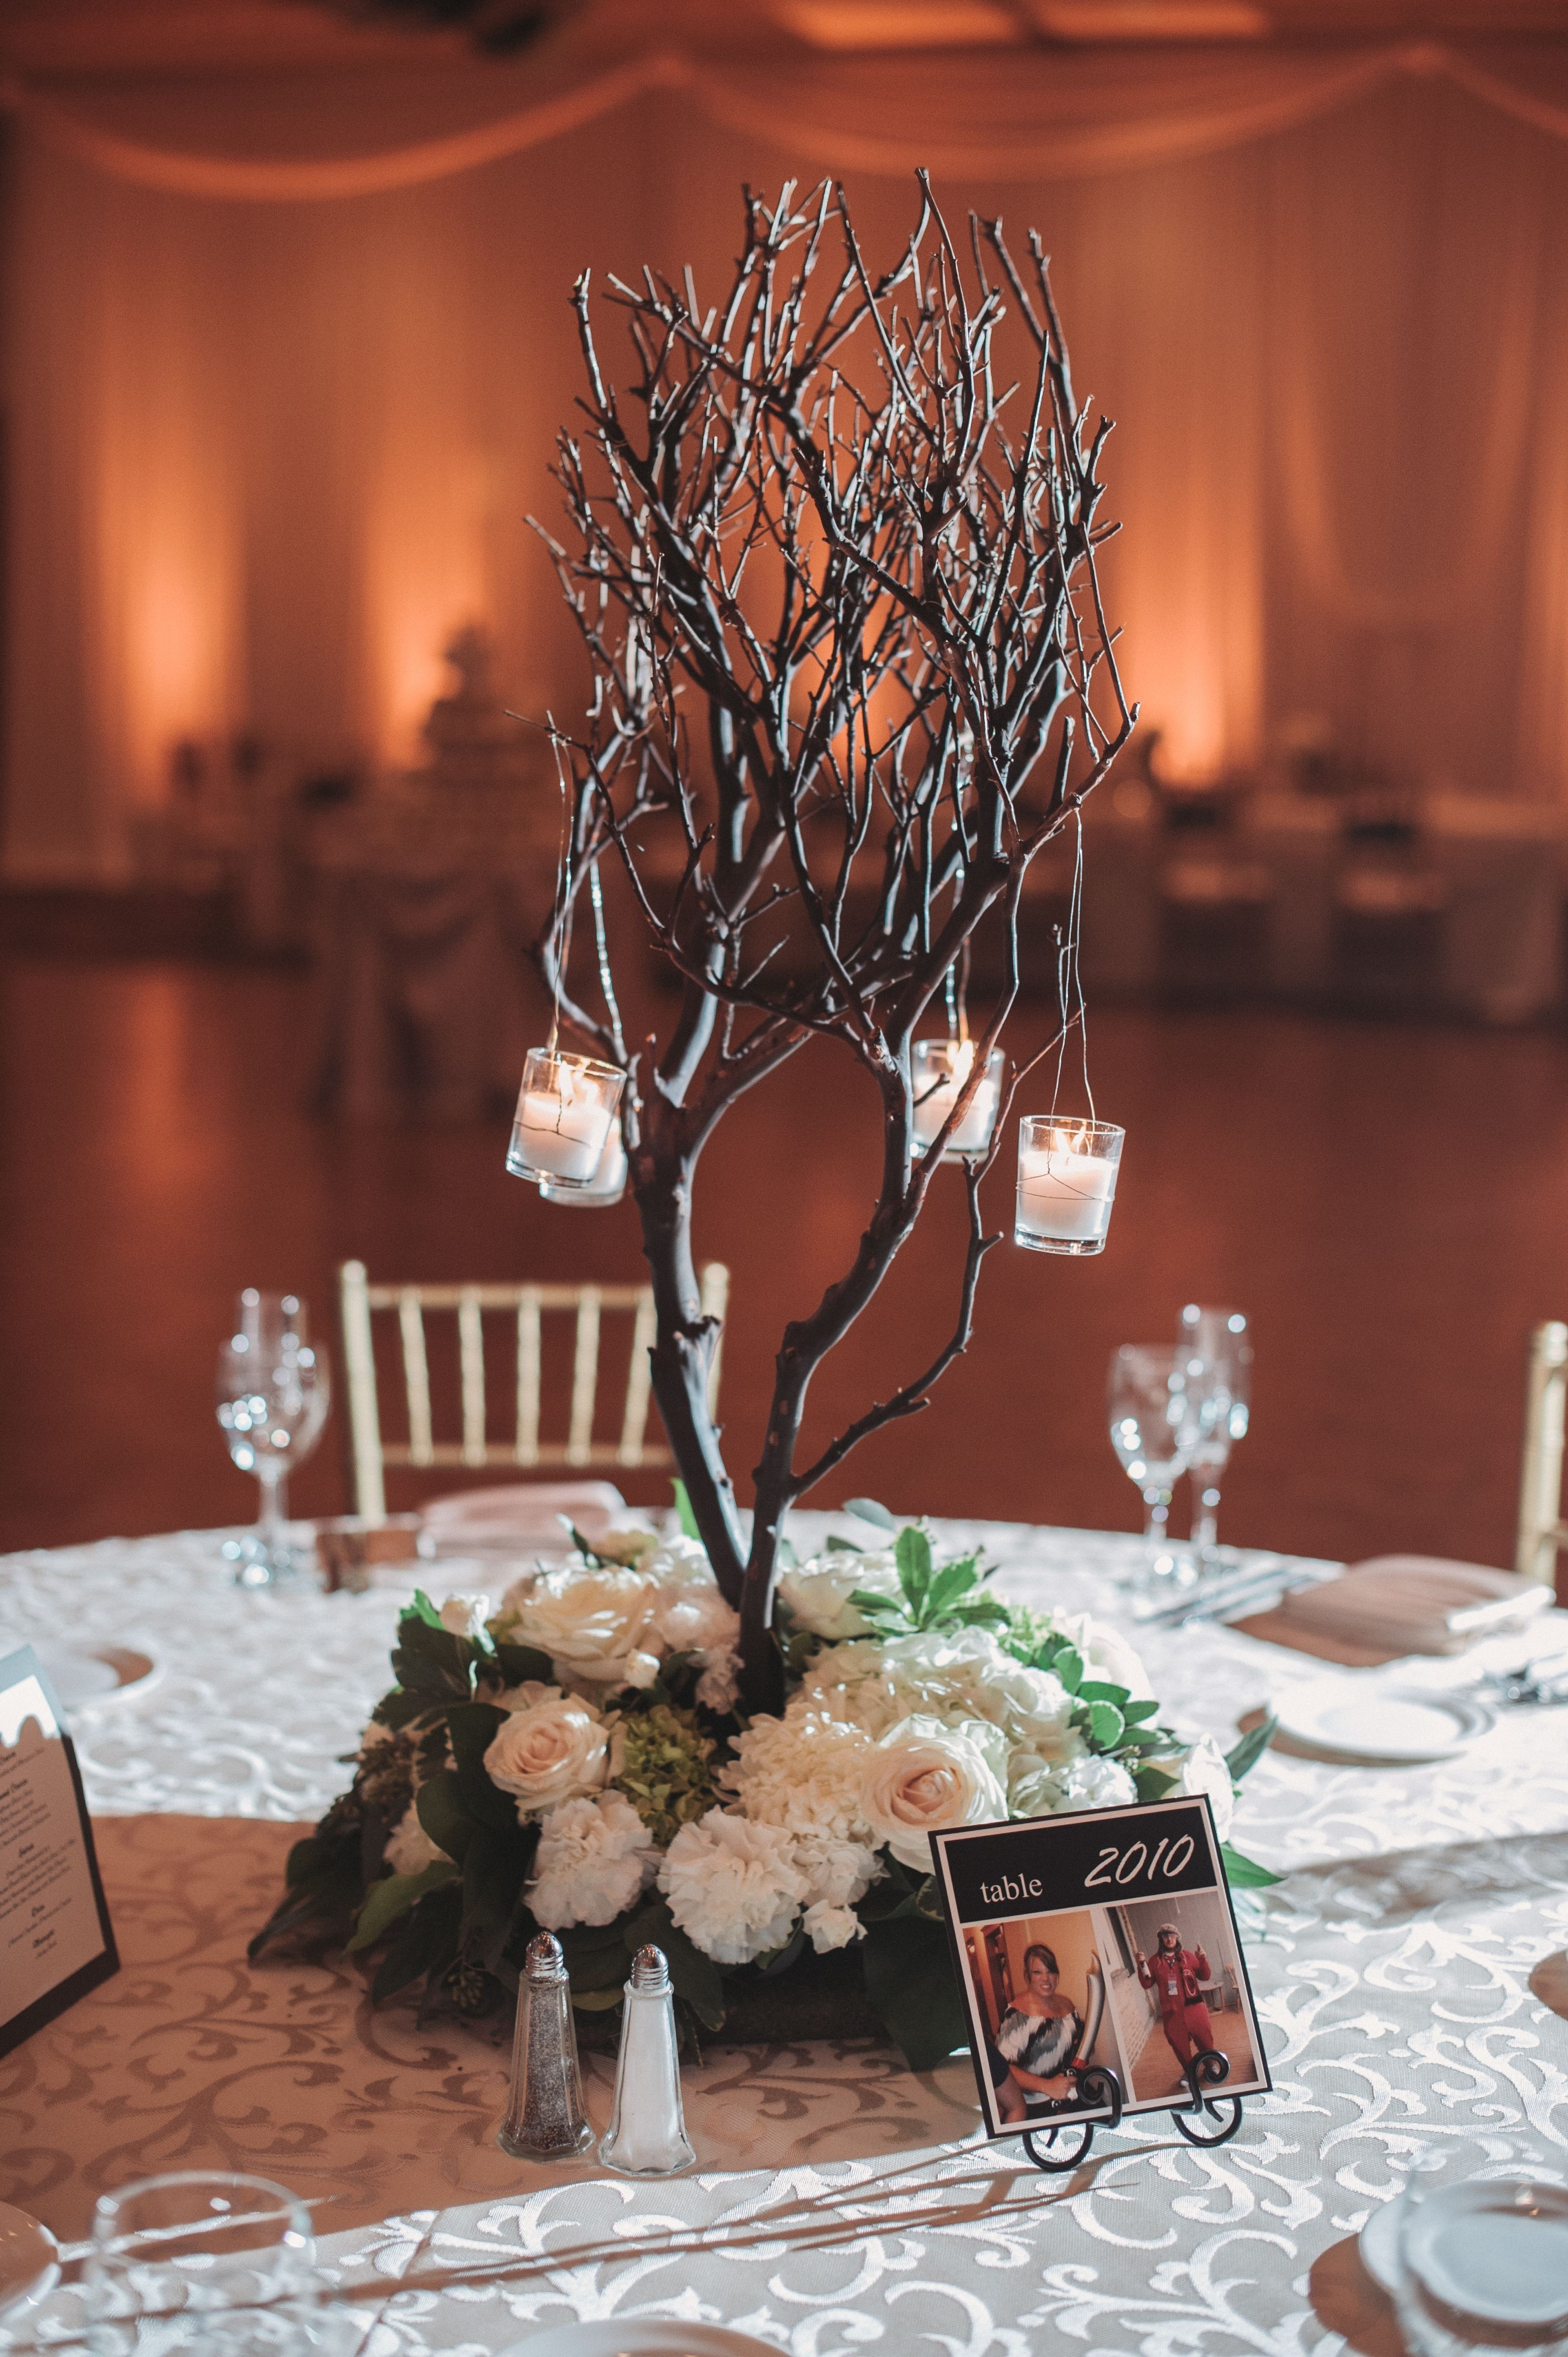 New Year's Eve Wedding | Table decorations, Wedding, Decor